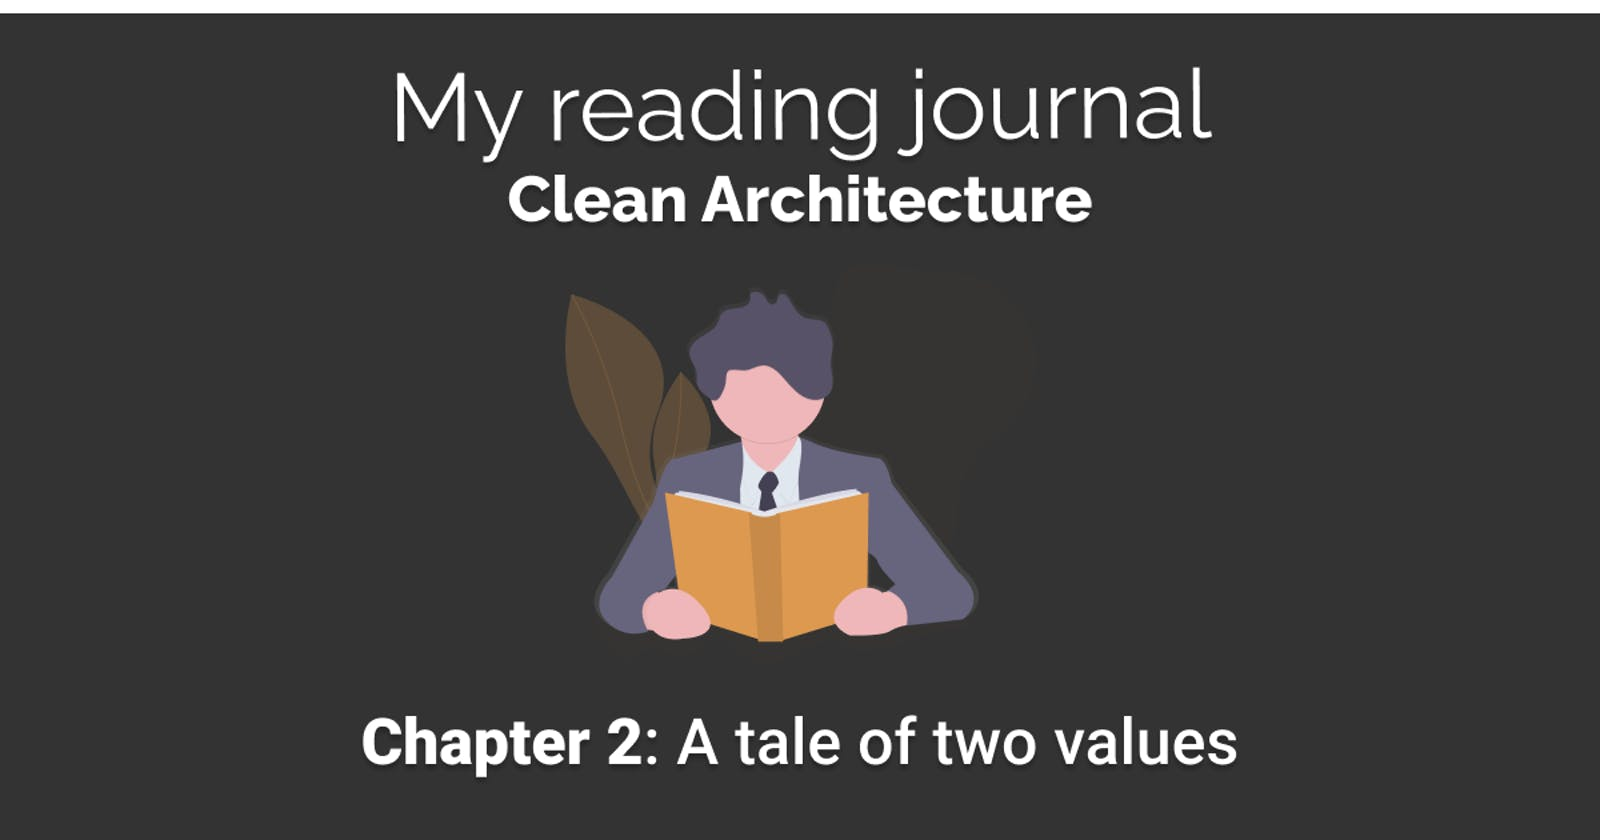 My reading journal: Clean Architecture - Chapter 2: A tale of two values